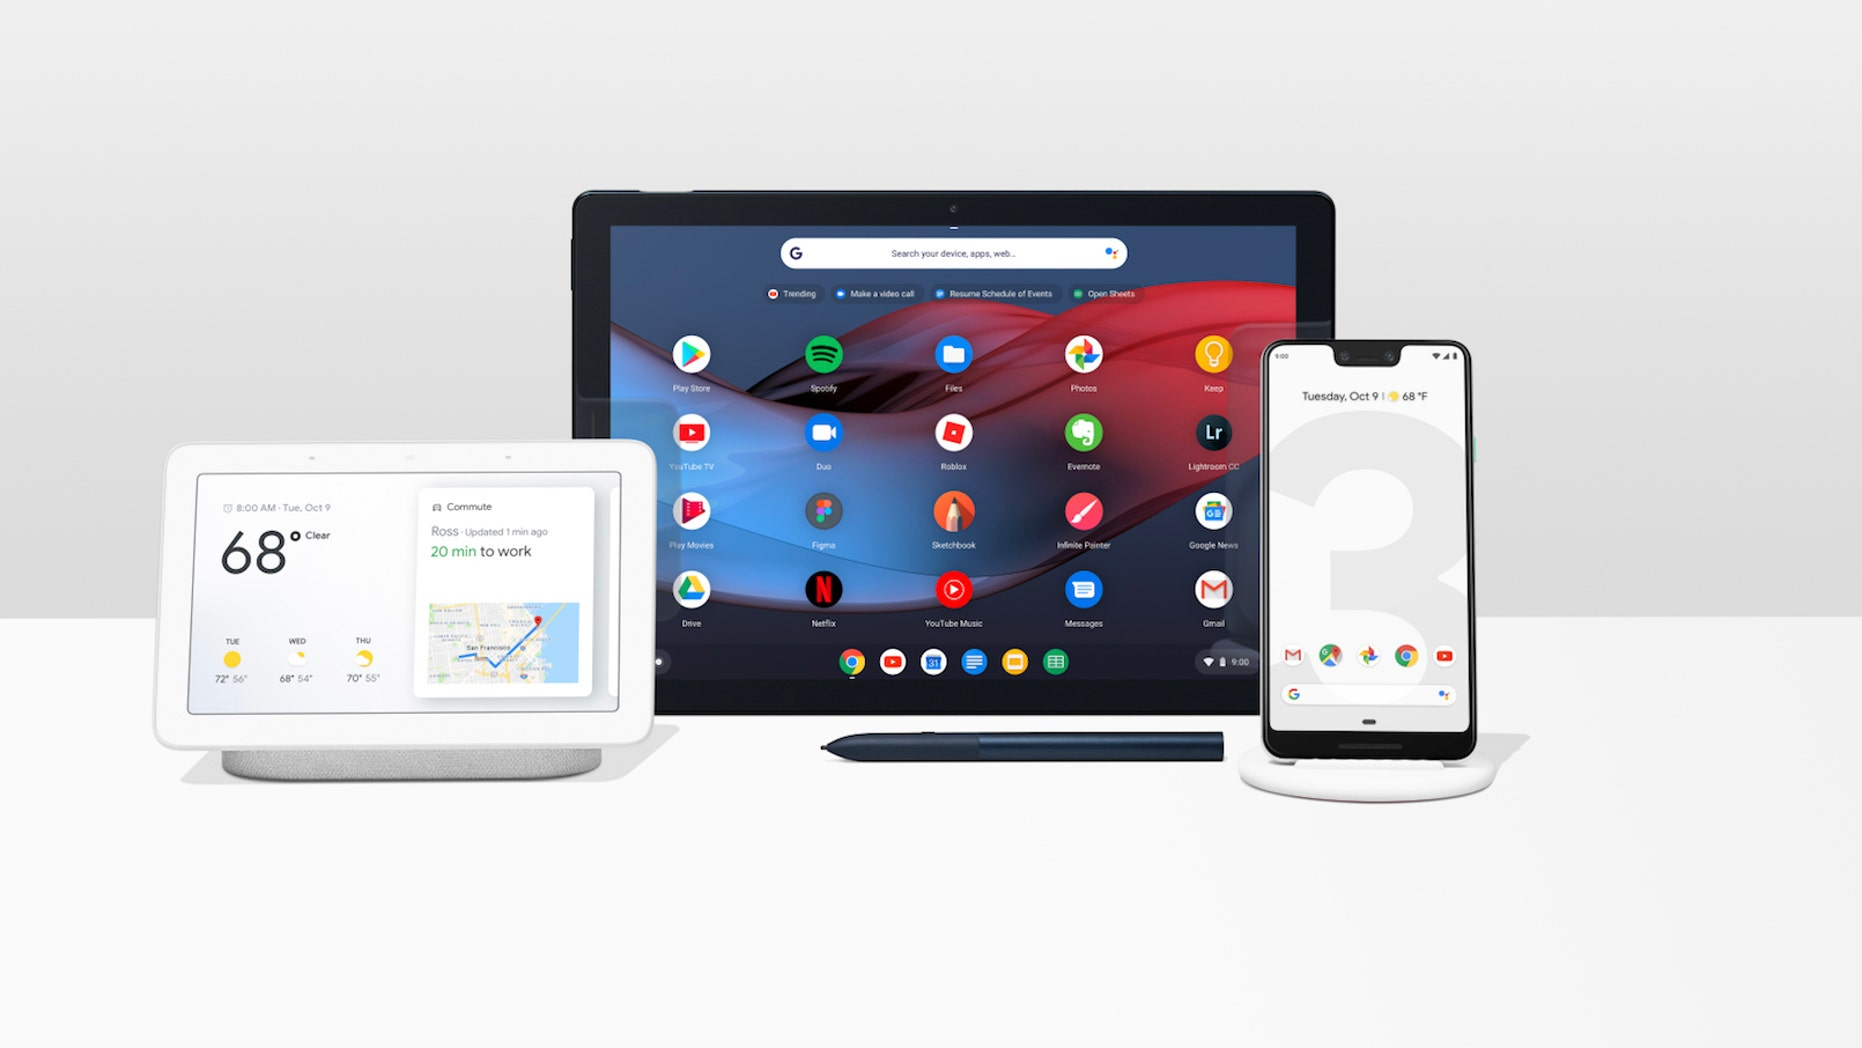 From left - the Google HomeHub, Pixel Slate tablet and Pixel 3 phone.